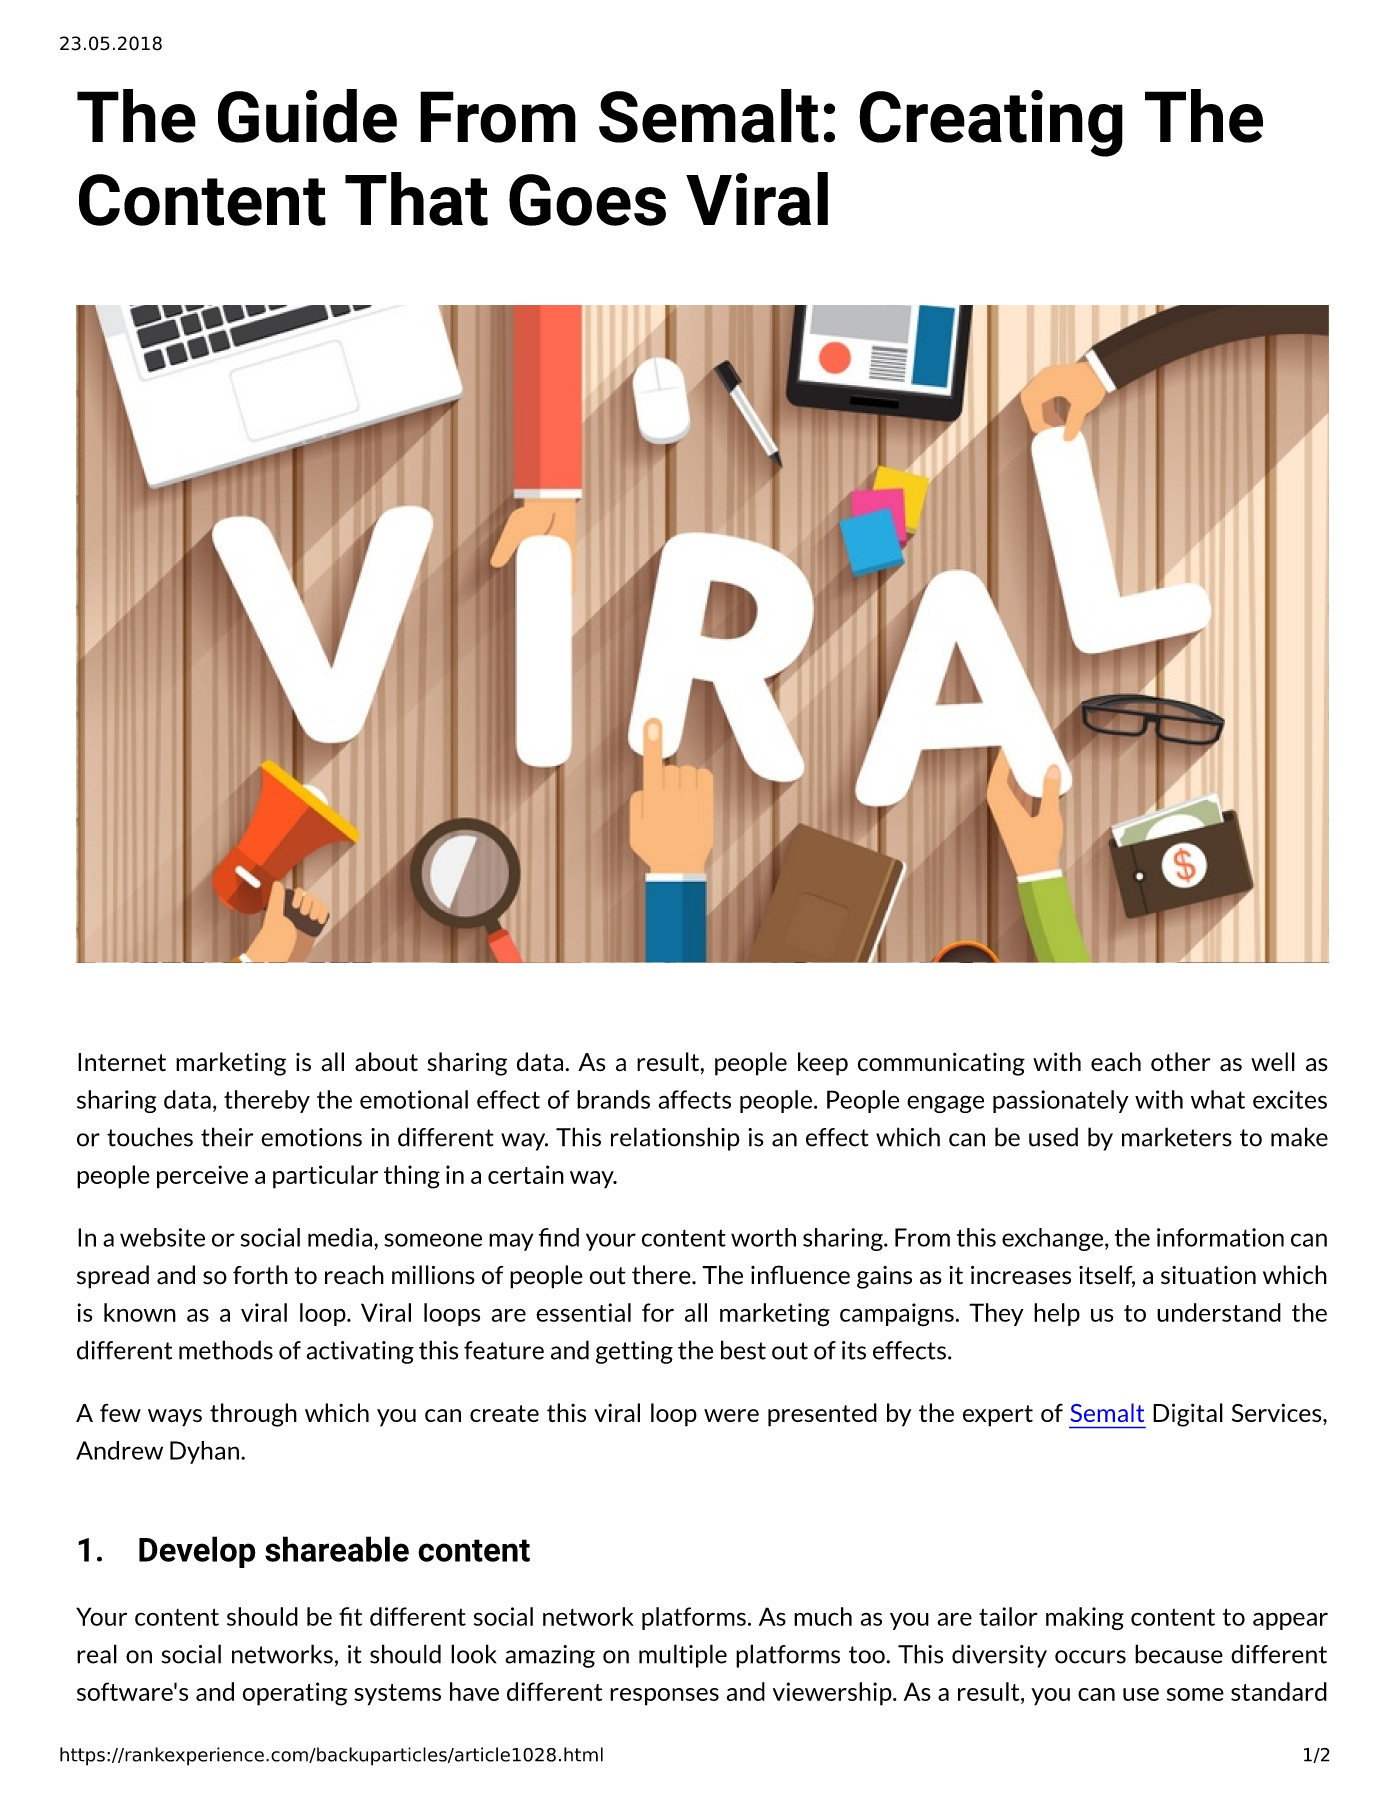 The Guide From Semalt: Creating The Content That Goes Viral